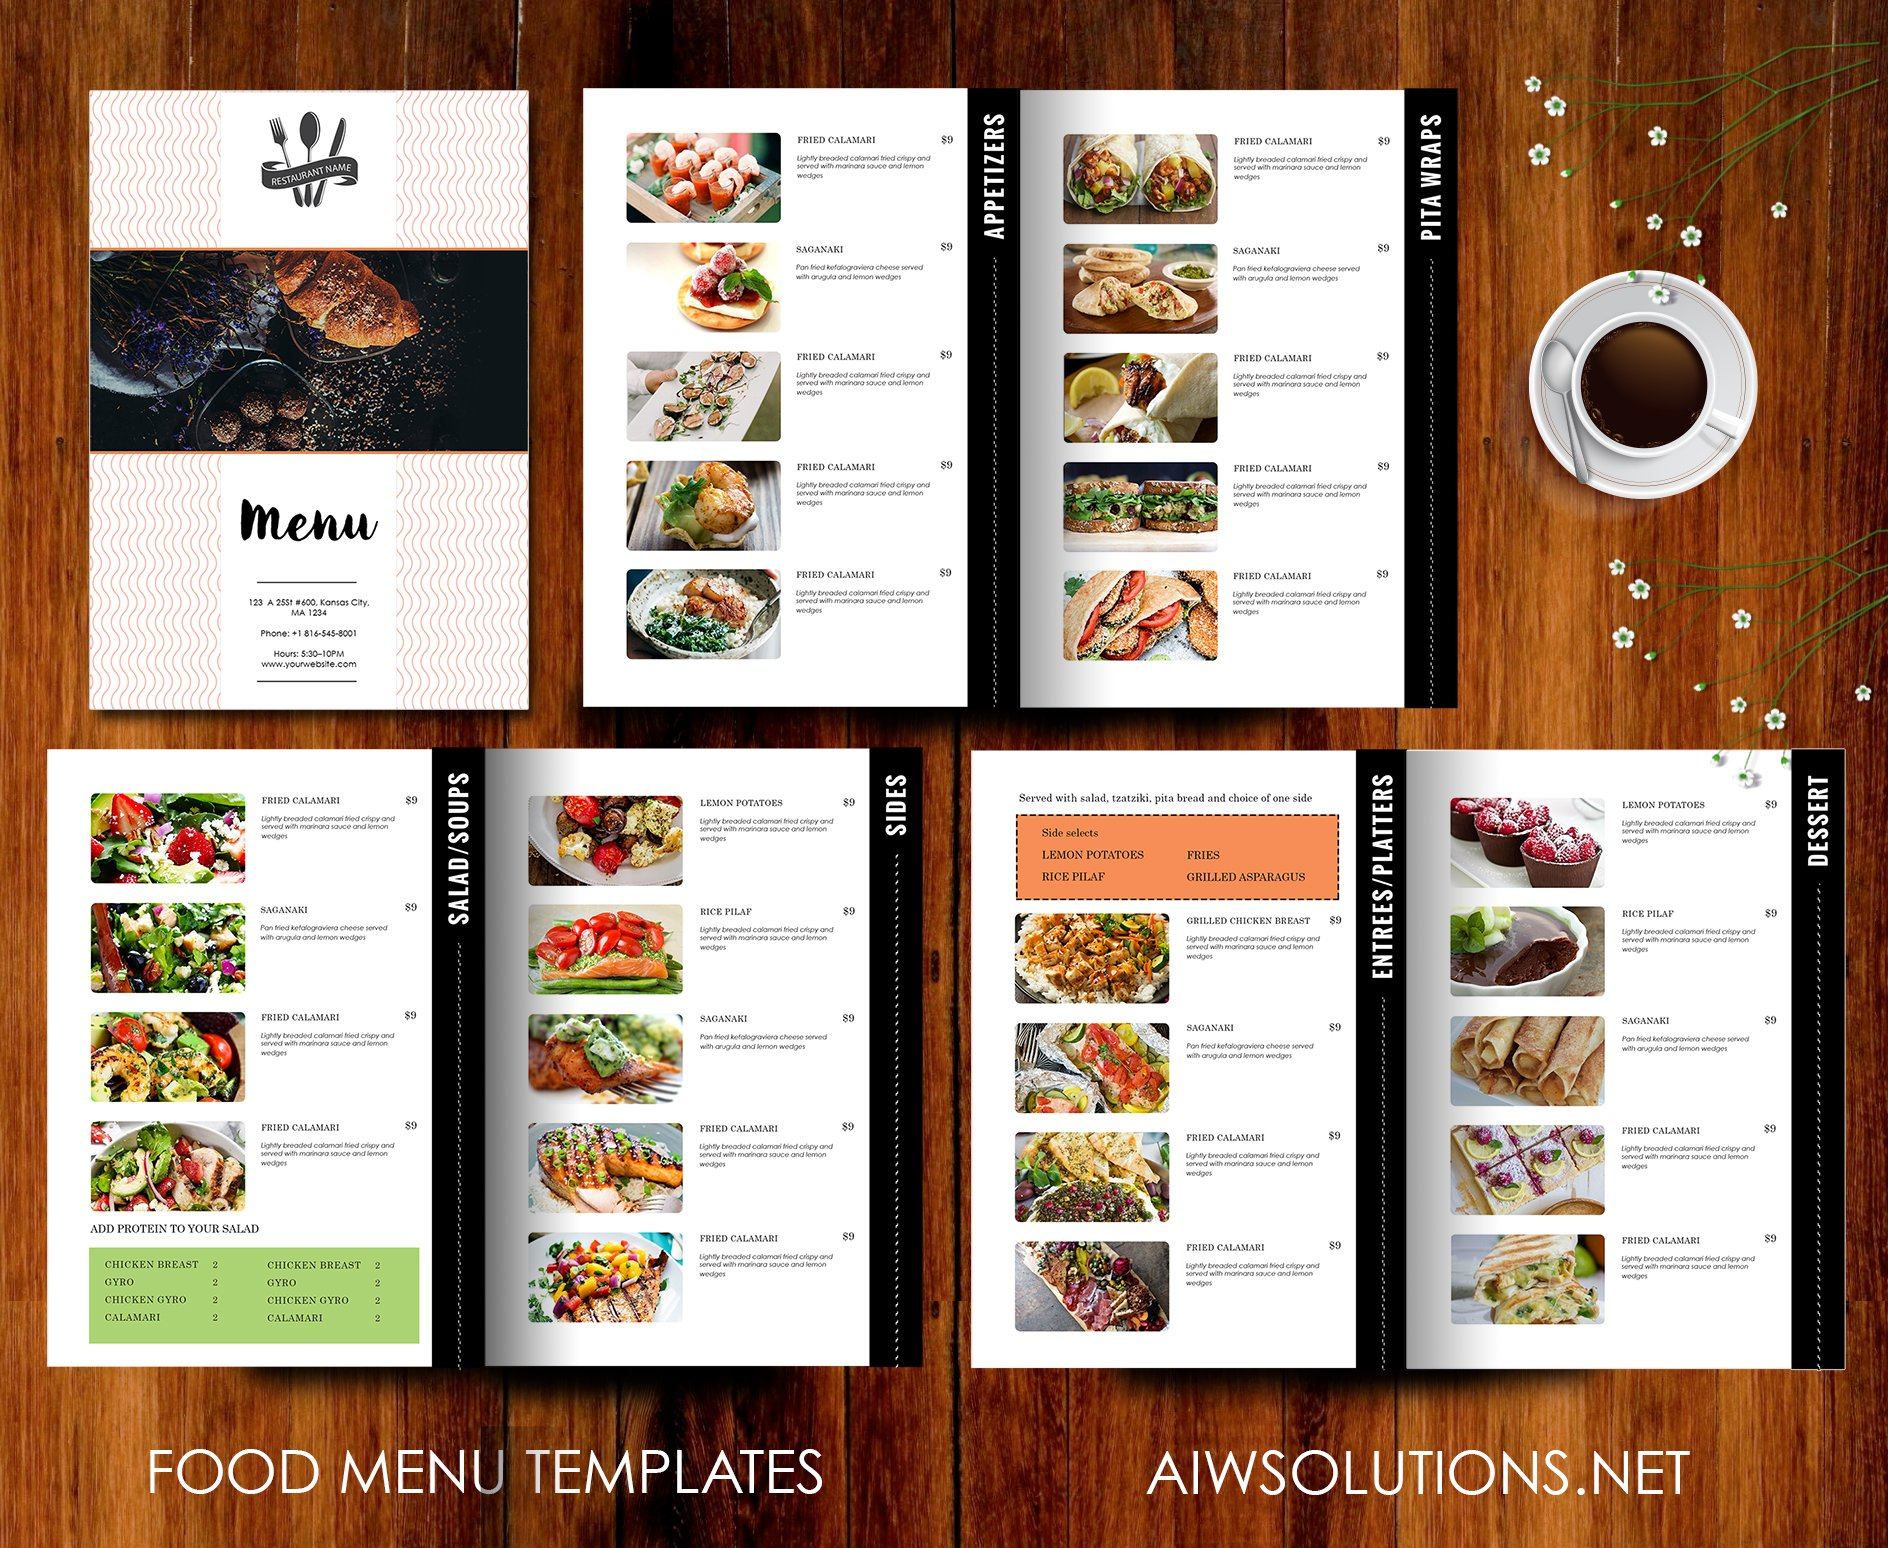 menu design restaurant - Restaurant Menu Design Ideas